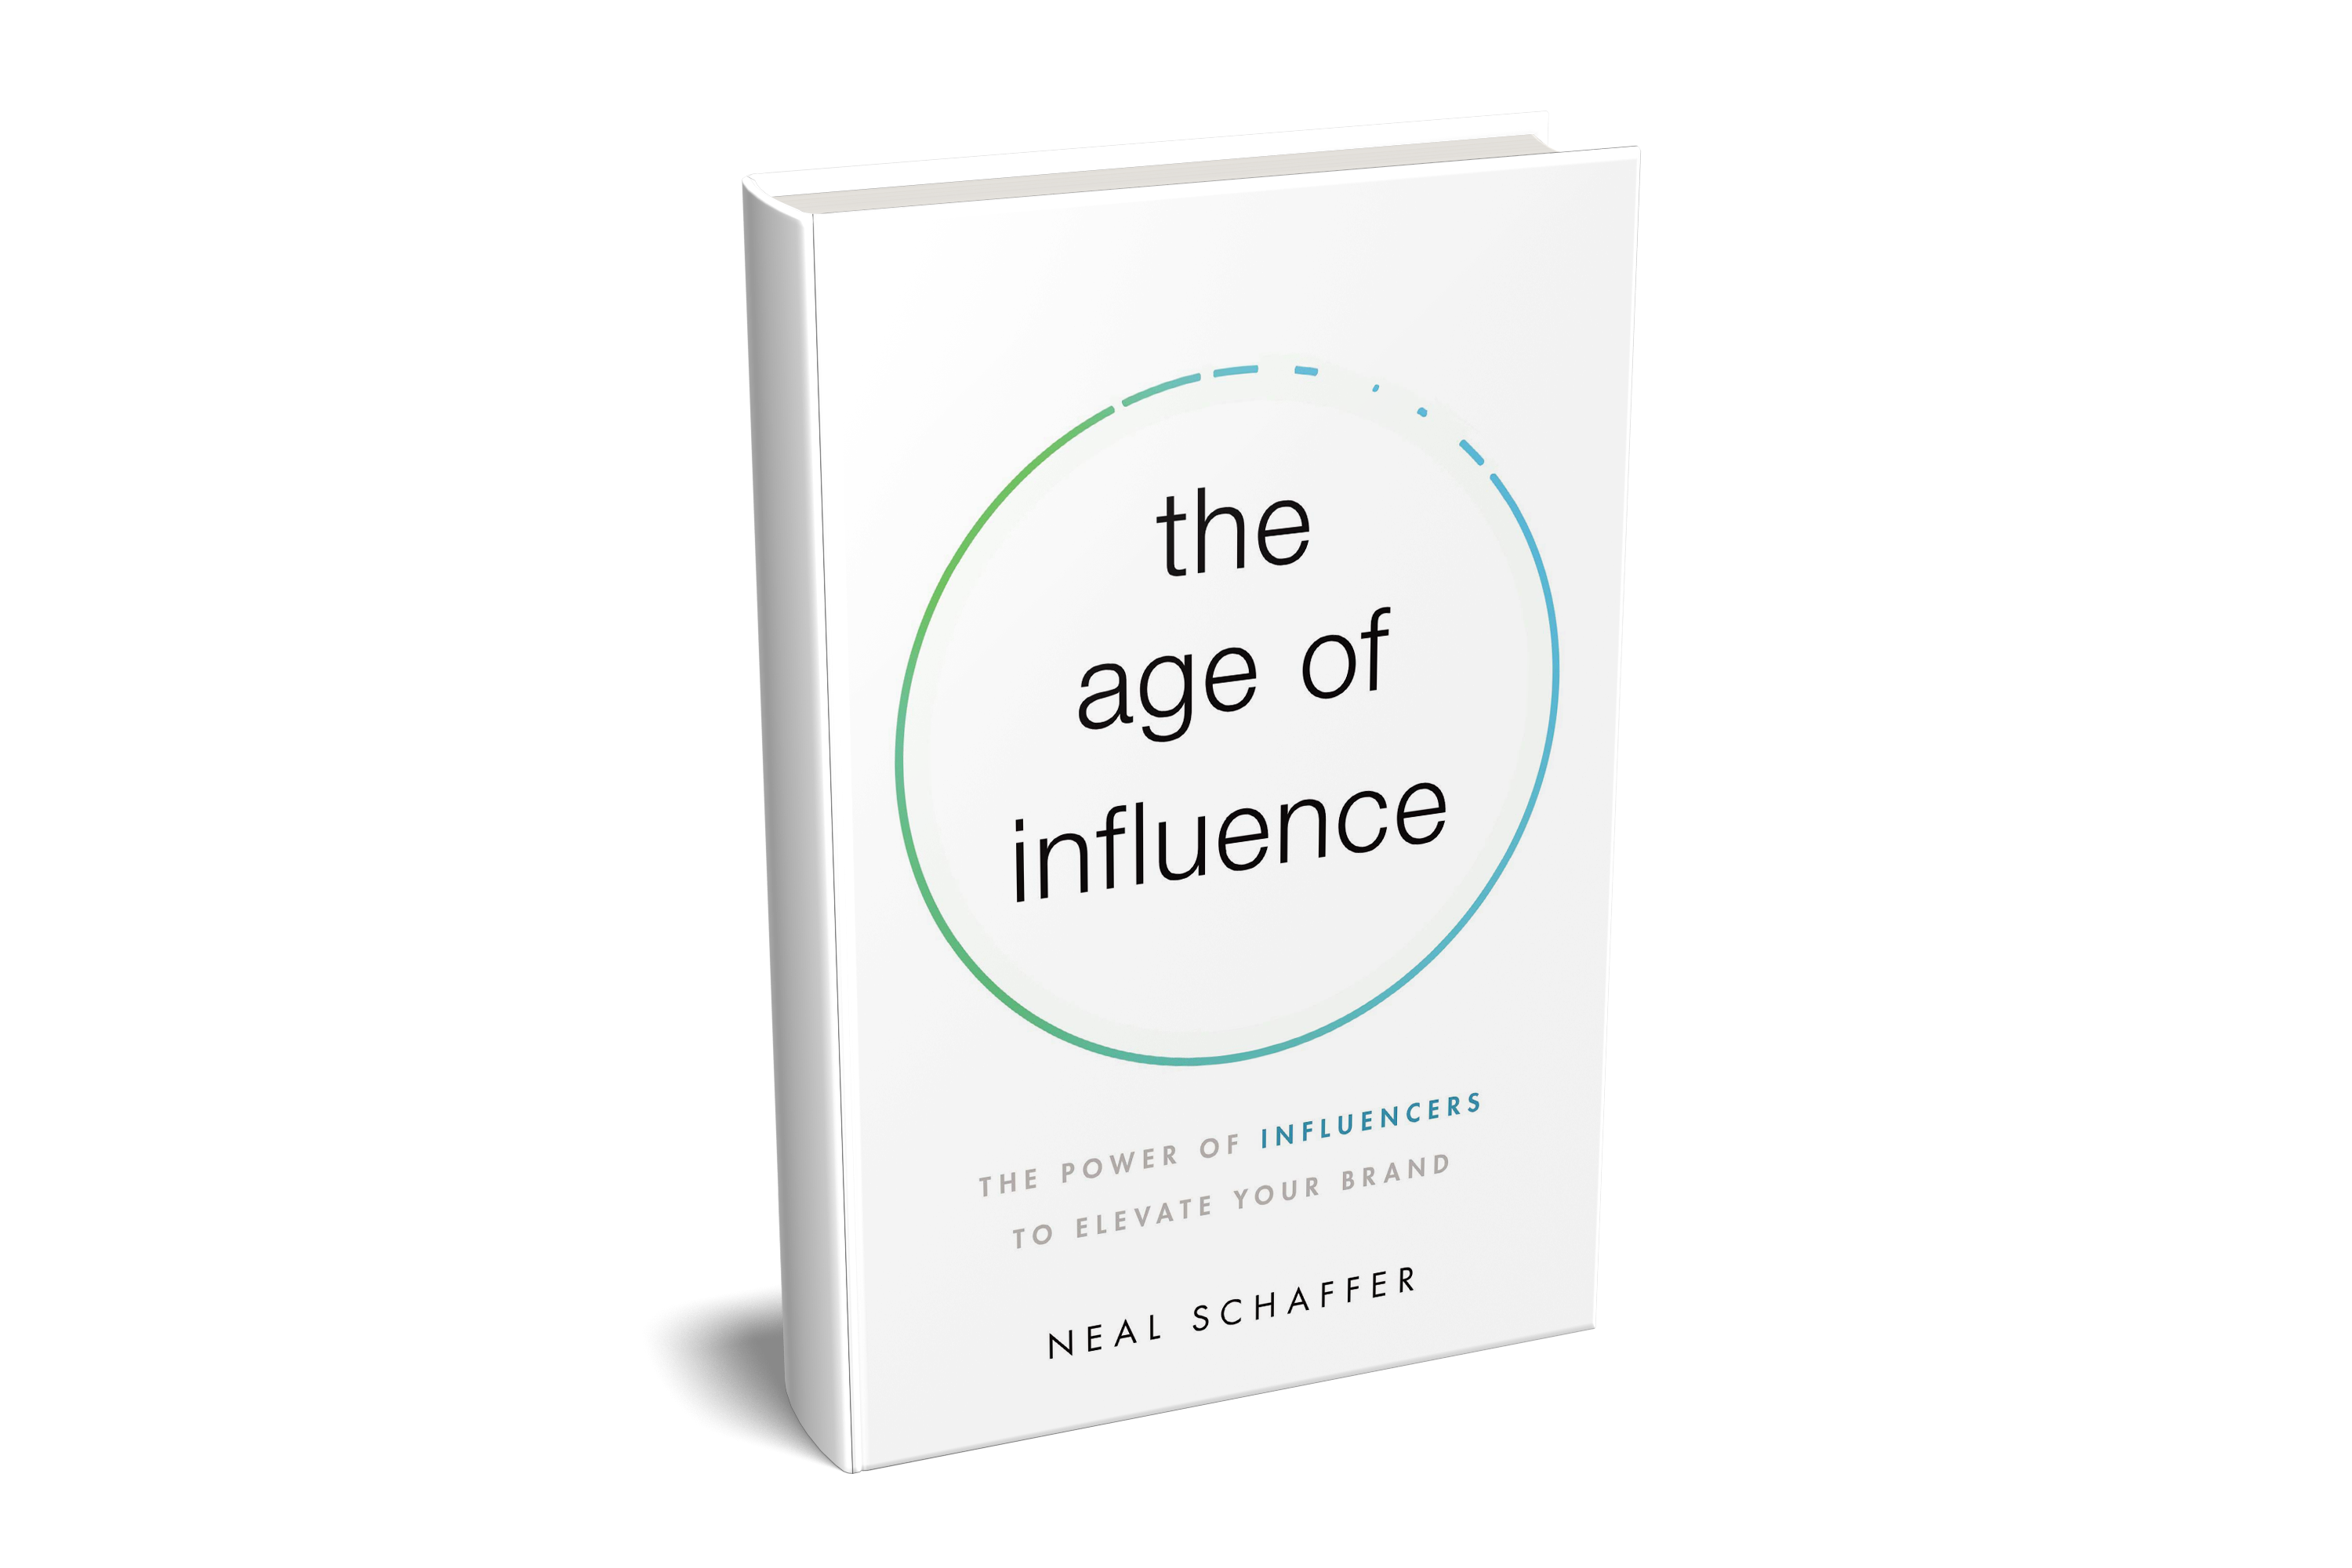 The Age of Influence: The Power of Influencers to Elevate Your Brand